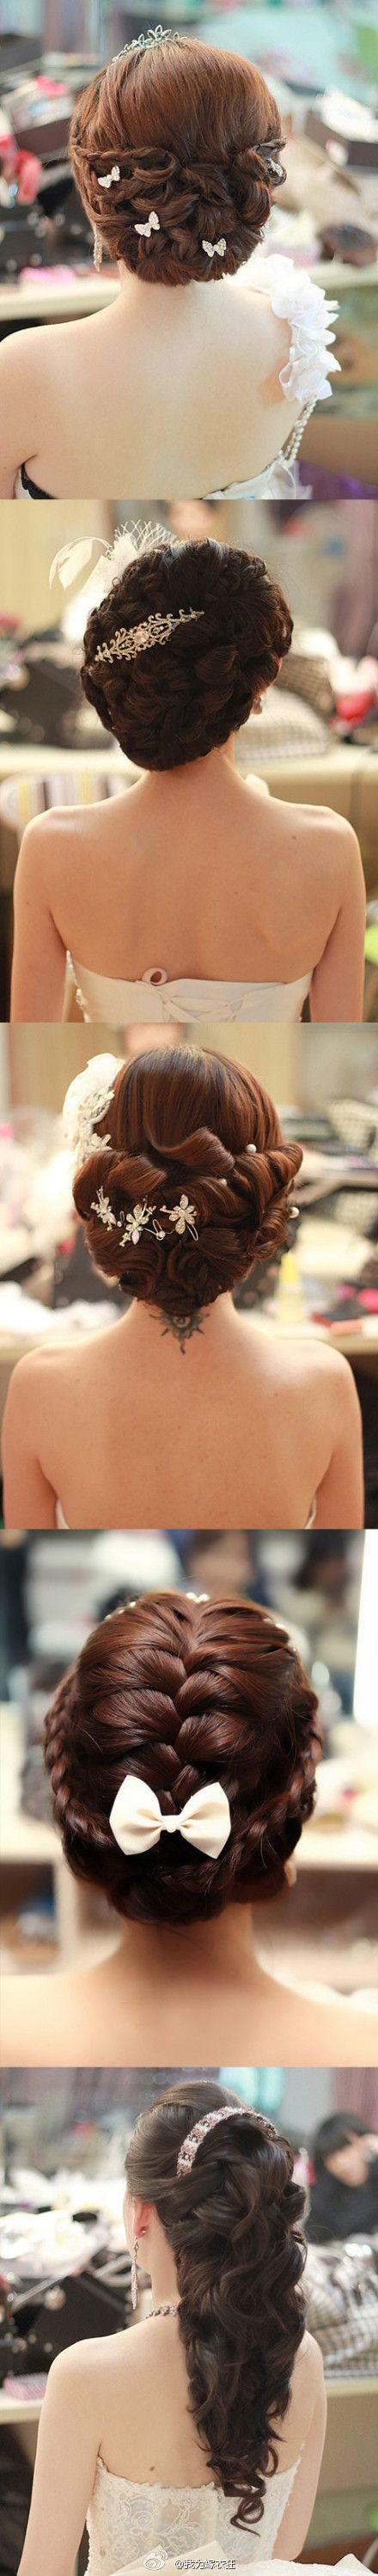 Lovely old fashioned hairstyles with a twist.